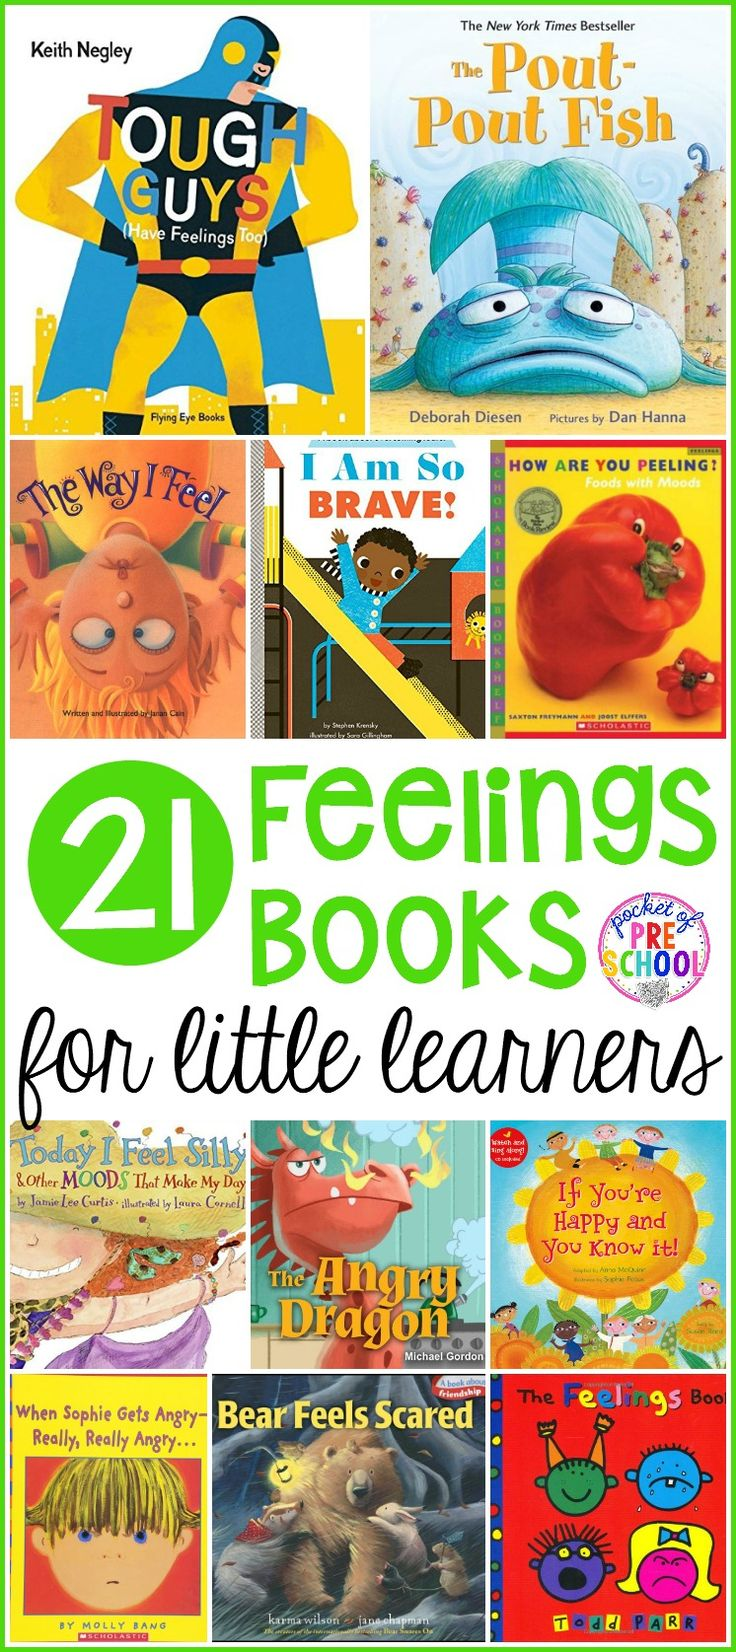 657 best Preschool Reading images on Pinterest | Preschool themes ...